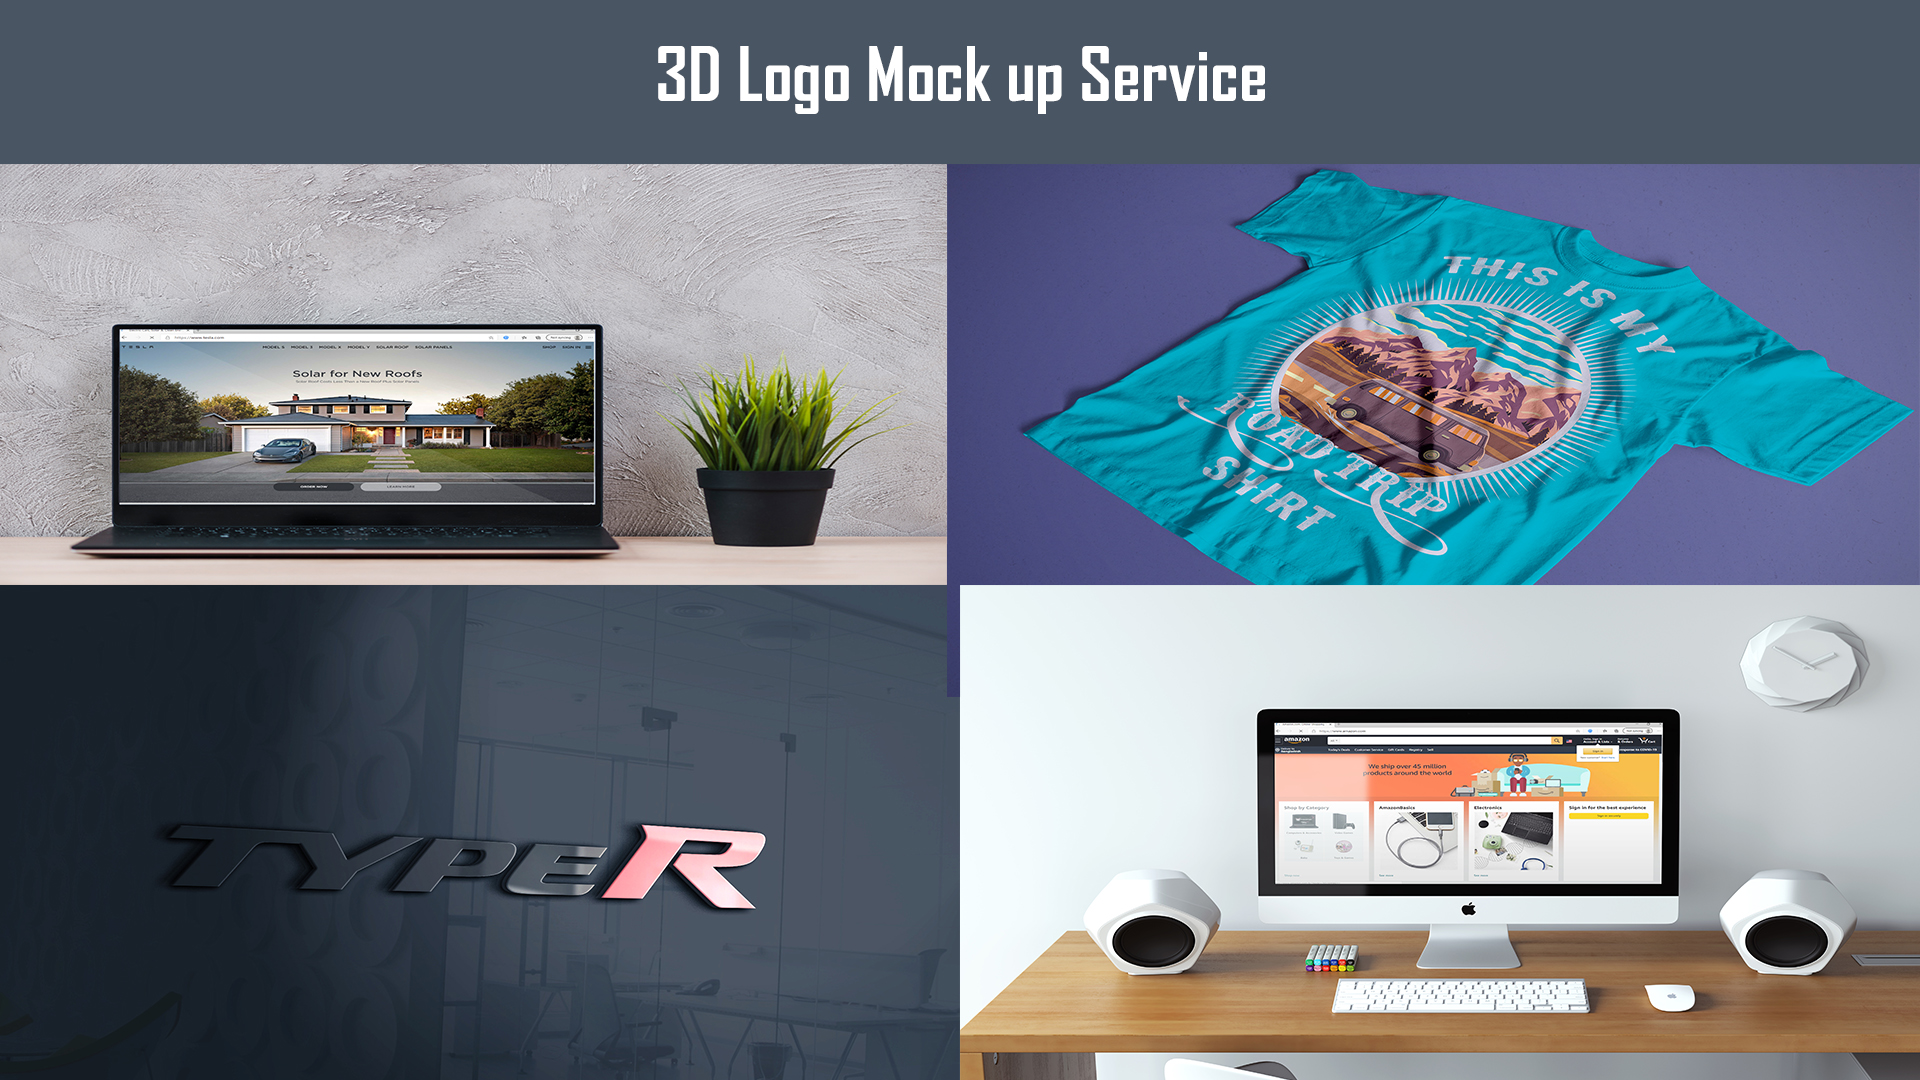 I will give you all kind of mockup services